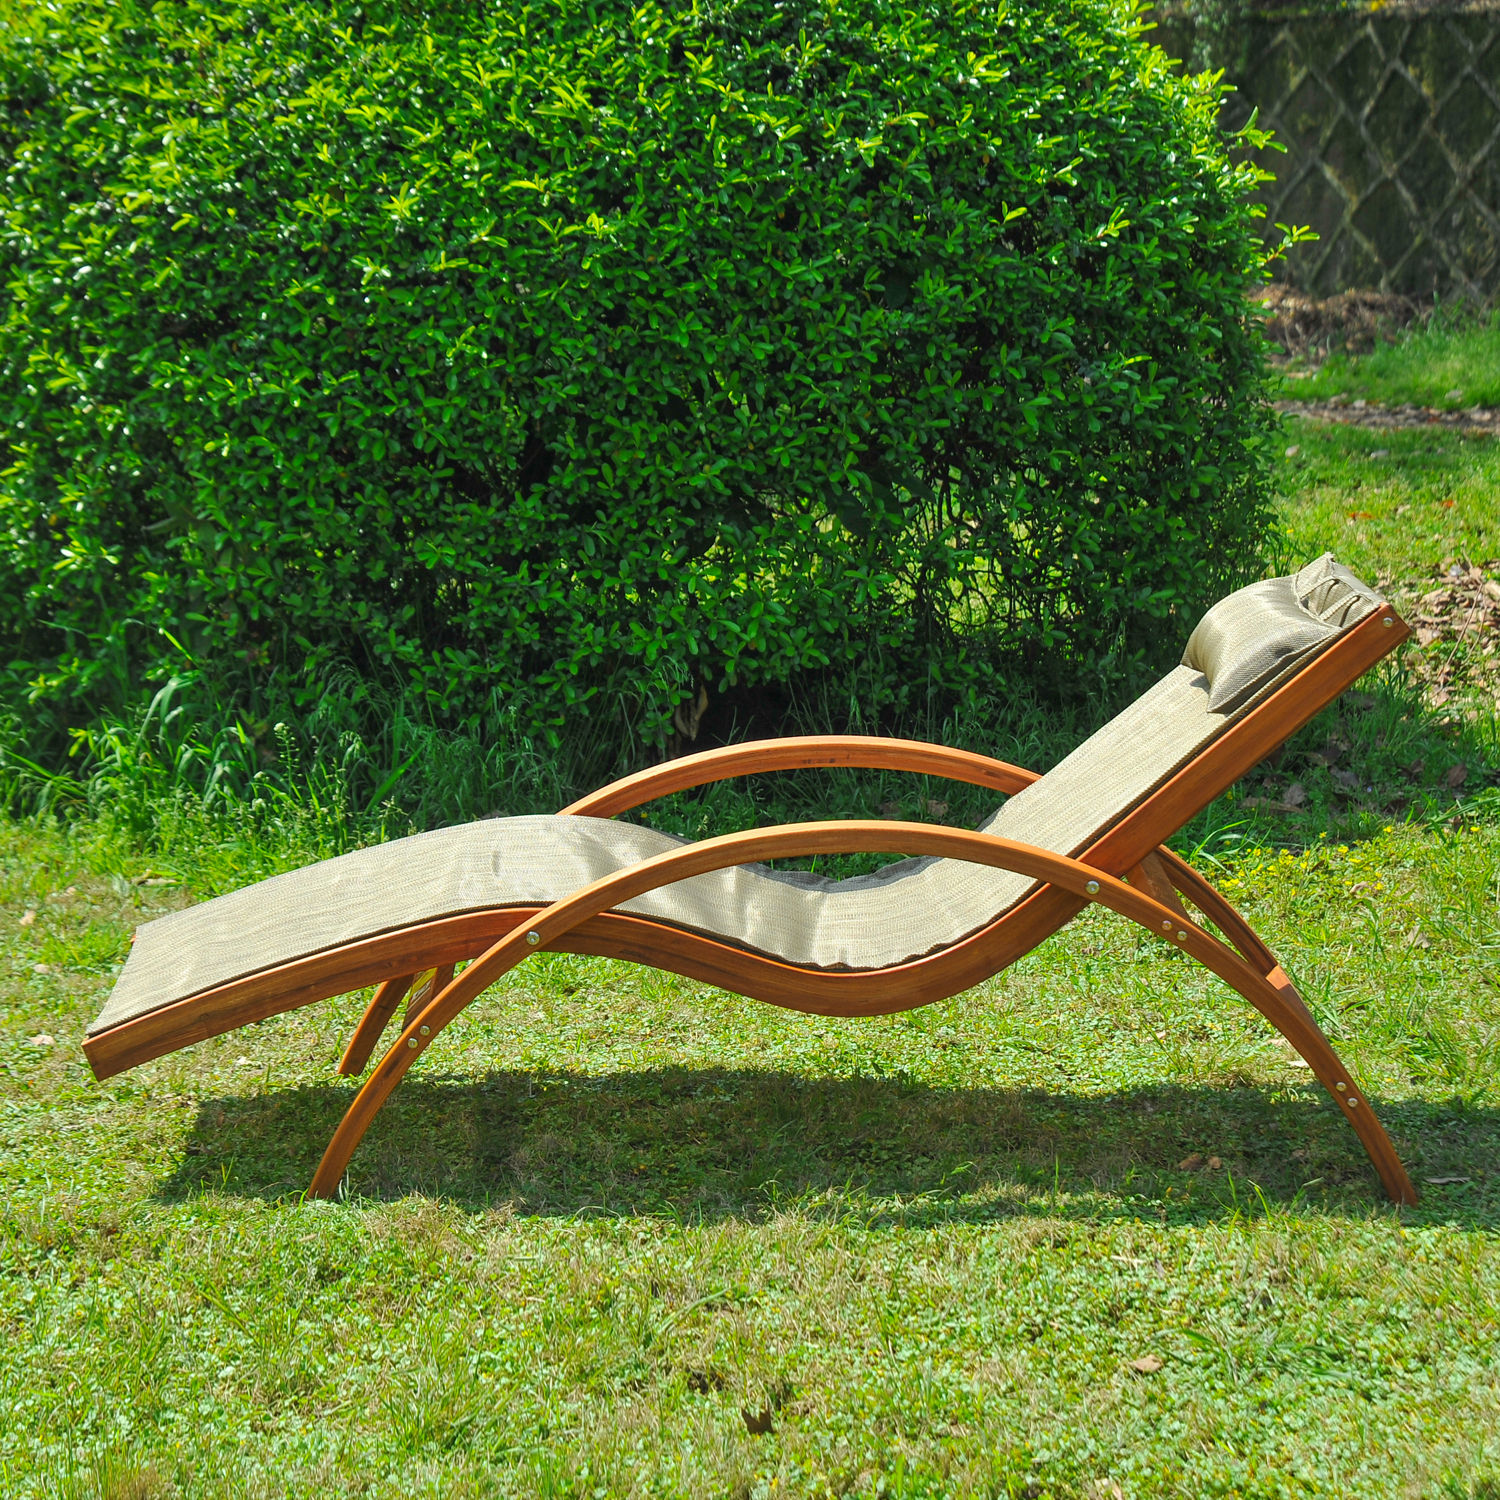 Wooden Lounge Chair Wooden Patio Chaise Lounge Chair Outdoor Furniture Pool